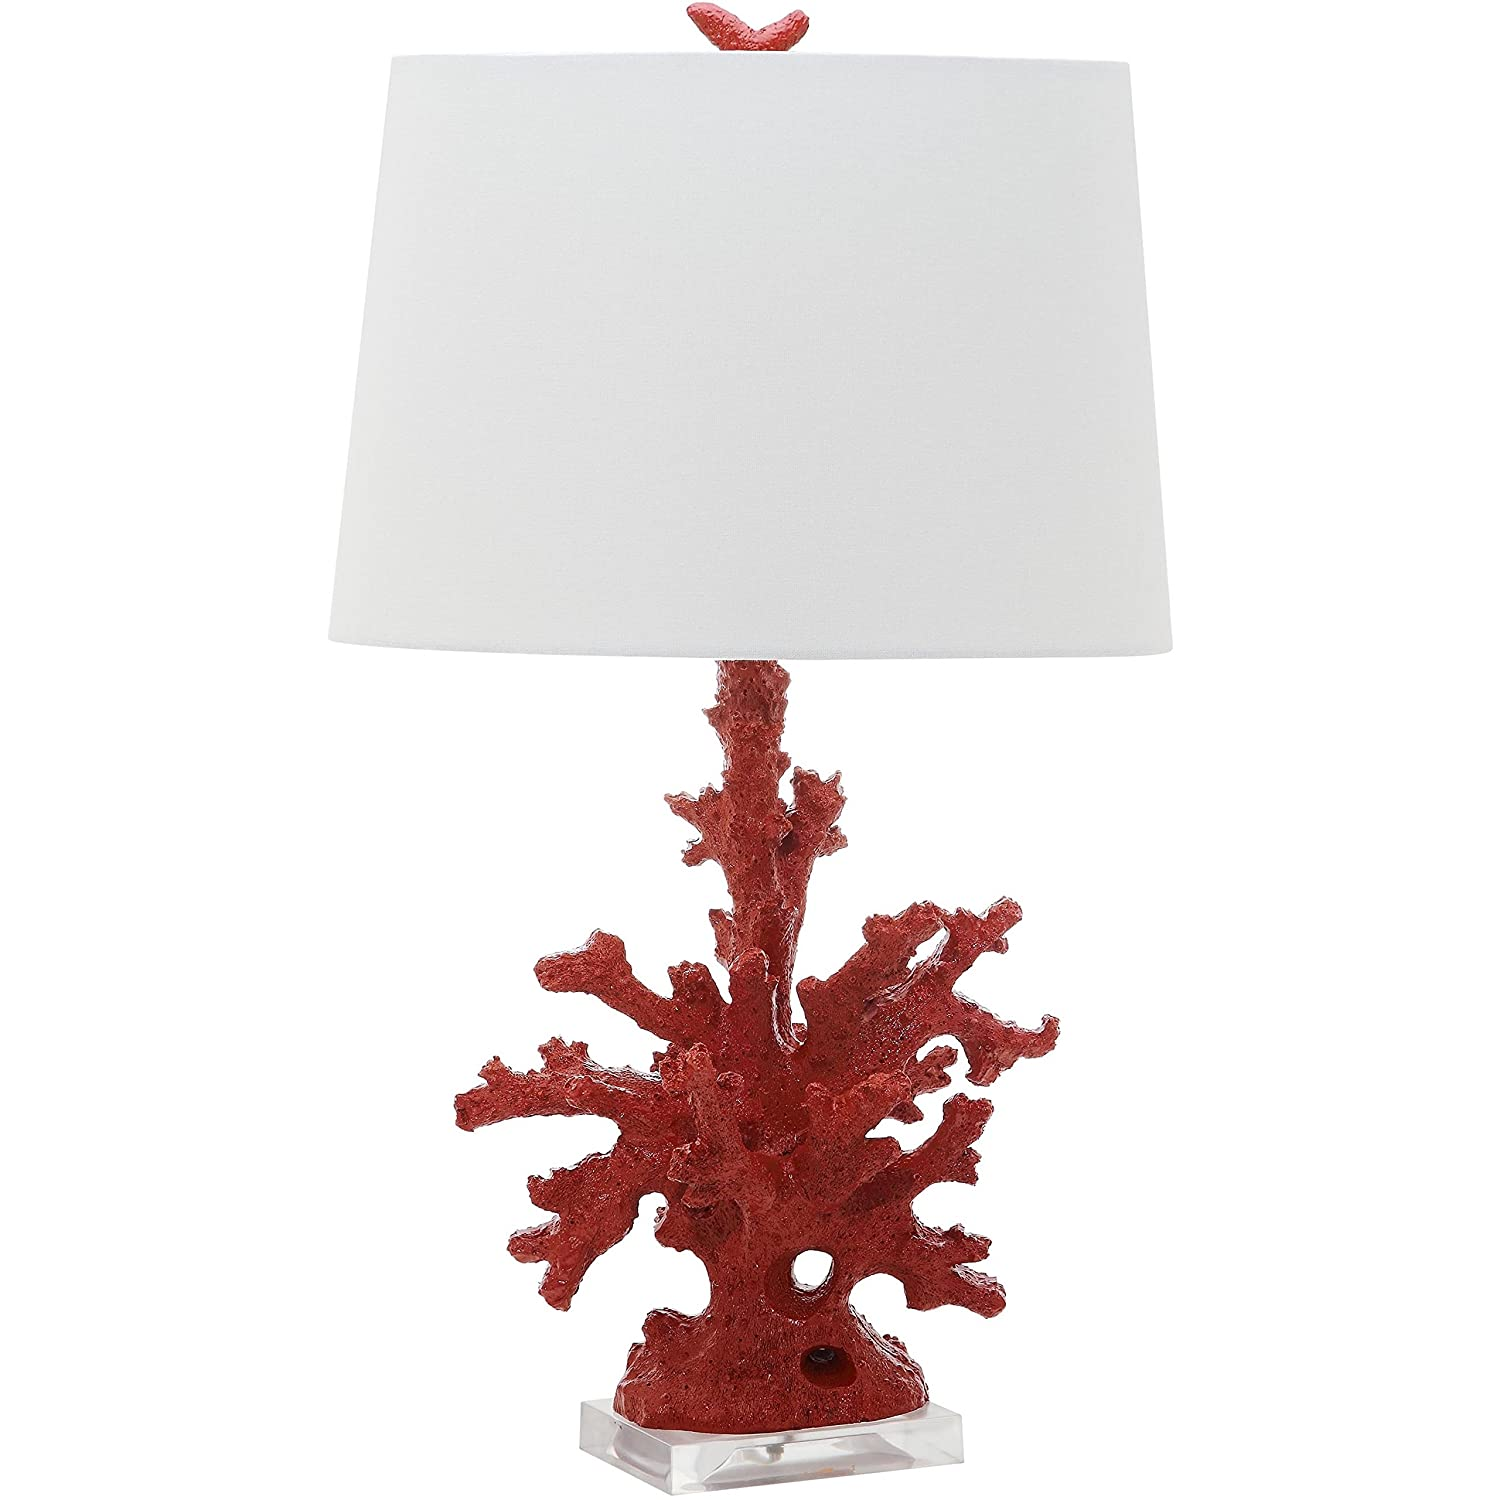 Coastal Christmas Tablescape Décor - Red faux coral branch table lamps - Set of 2